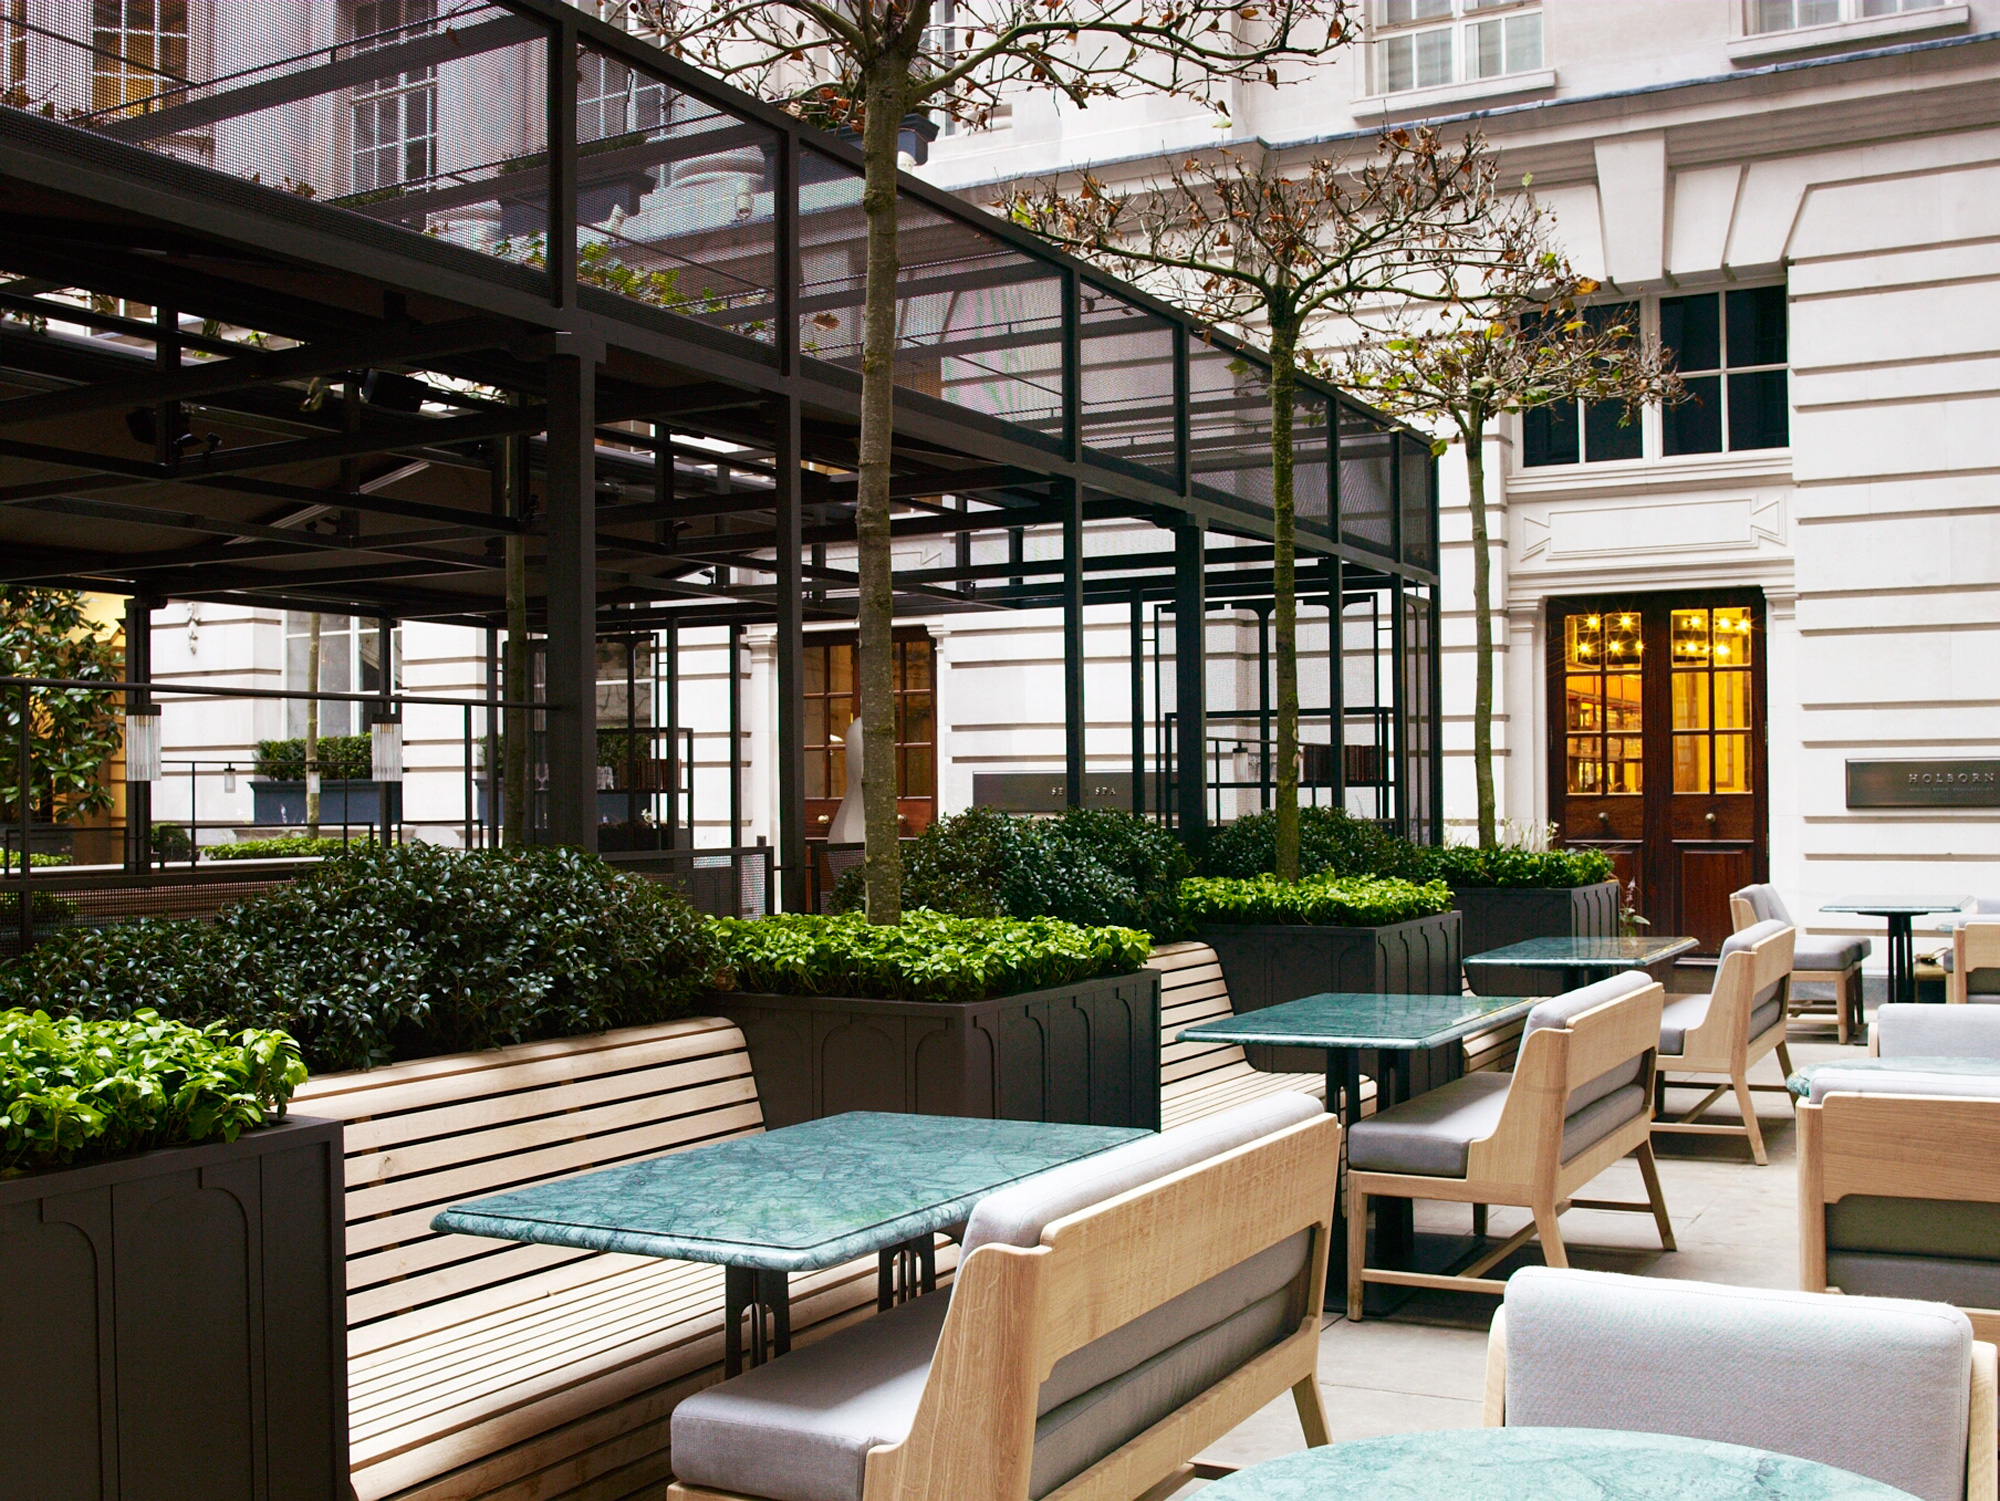 Luciano giubbilei rosewood london for At the terrace